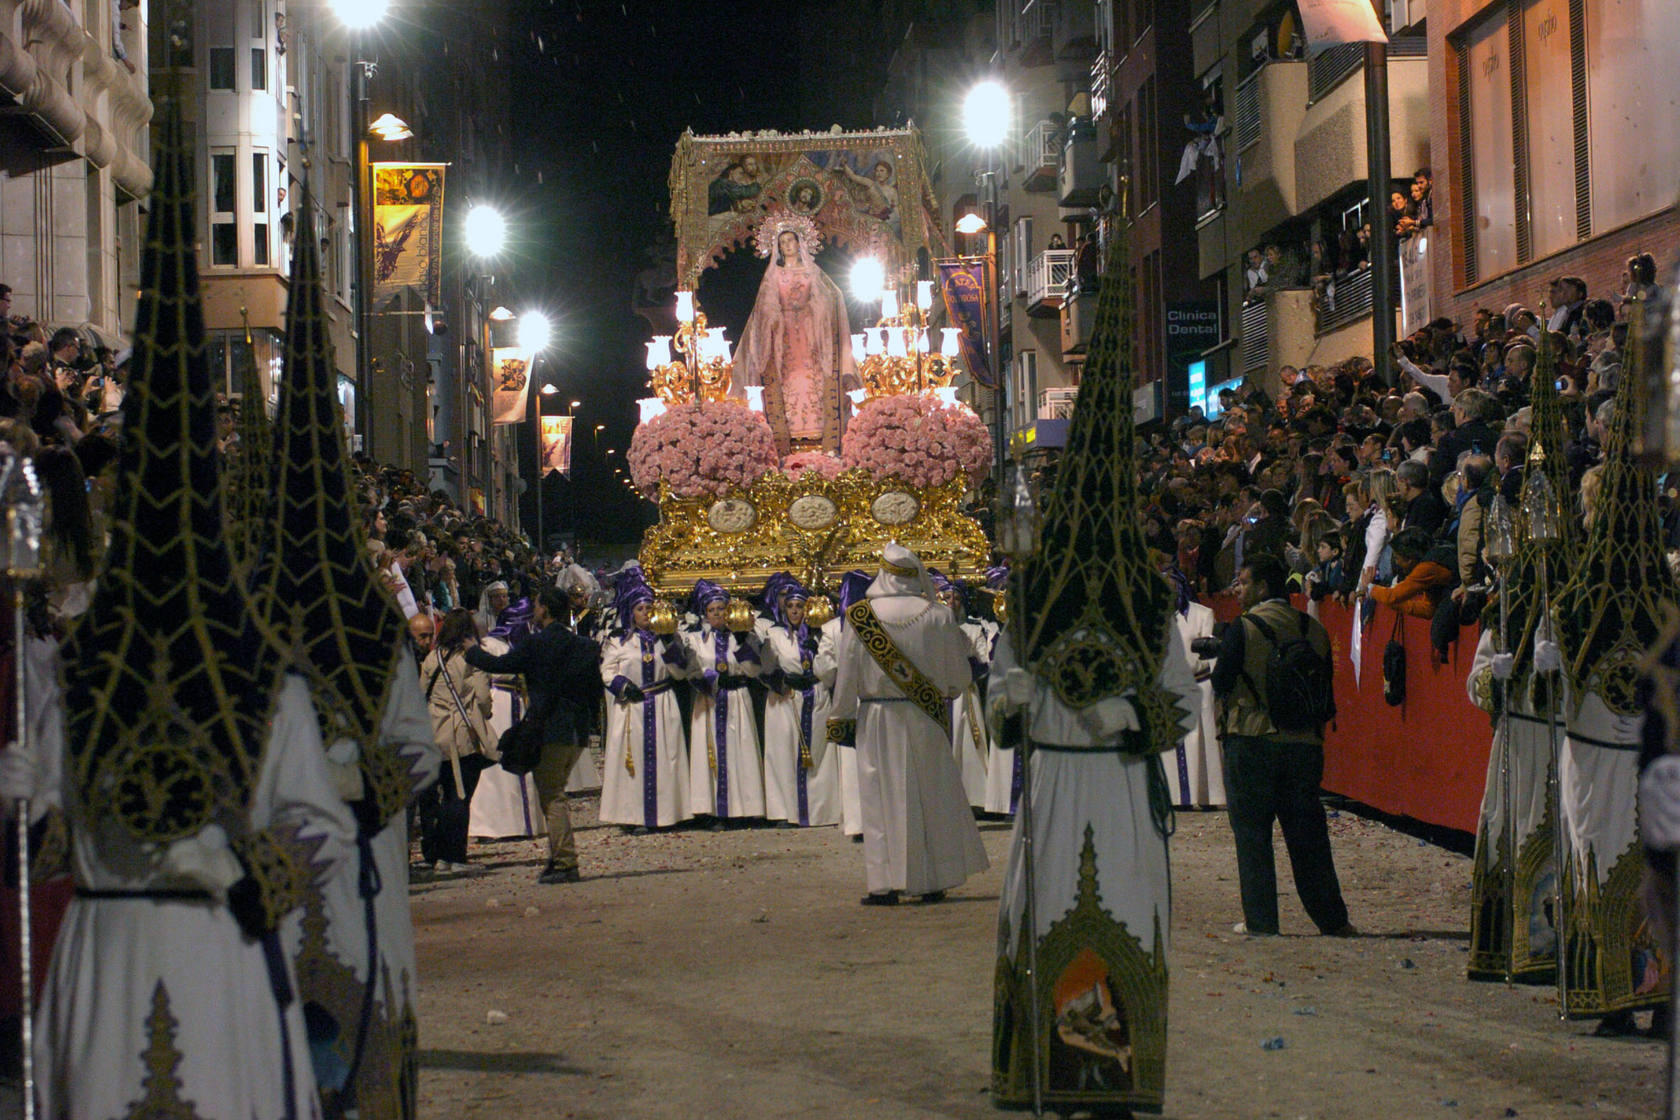 La procesi&oacute;n de los blancos en el d&iacute;a de Viernes Santo